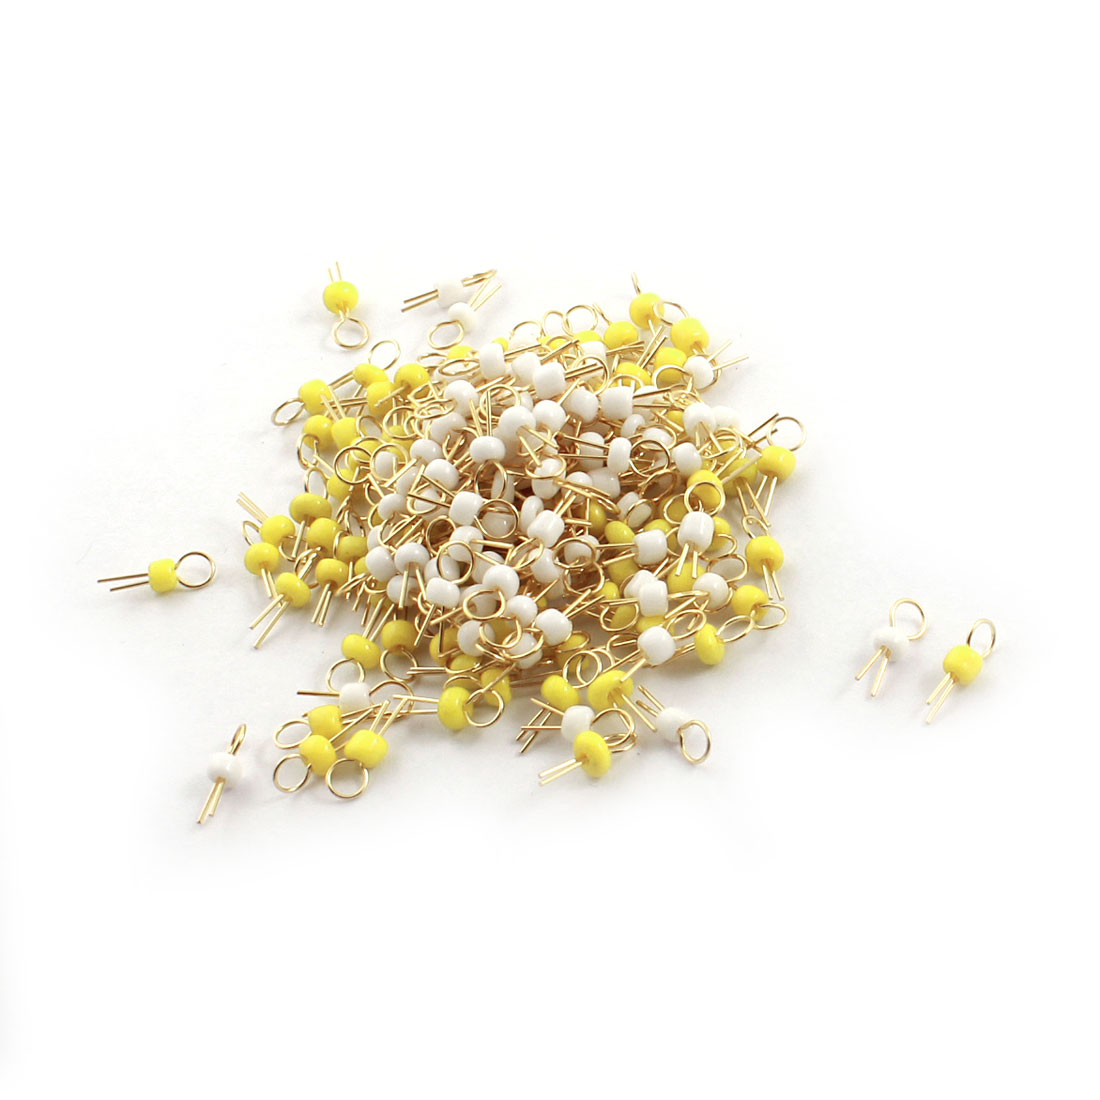 200Pcs White + Yellow Ceramic Bead 3.2mm Head Dia Gold Tone Copper PCB Test Pin Terminals